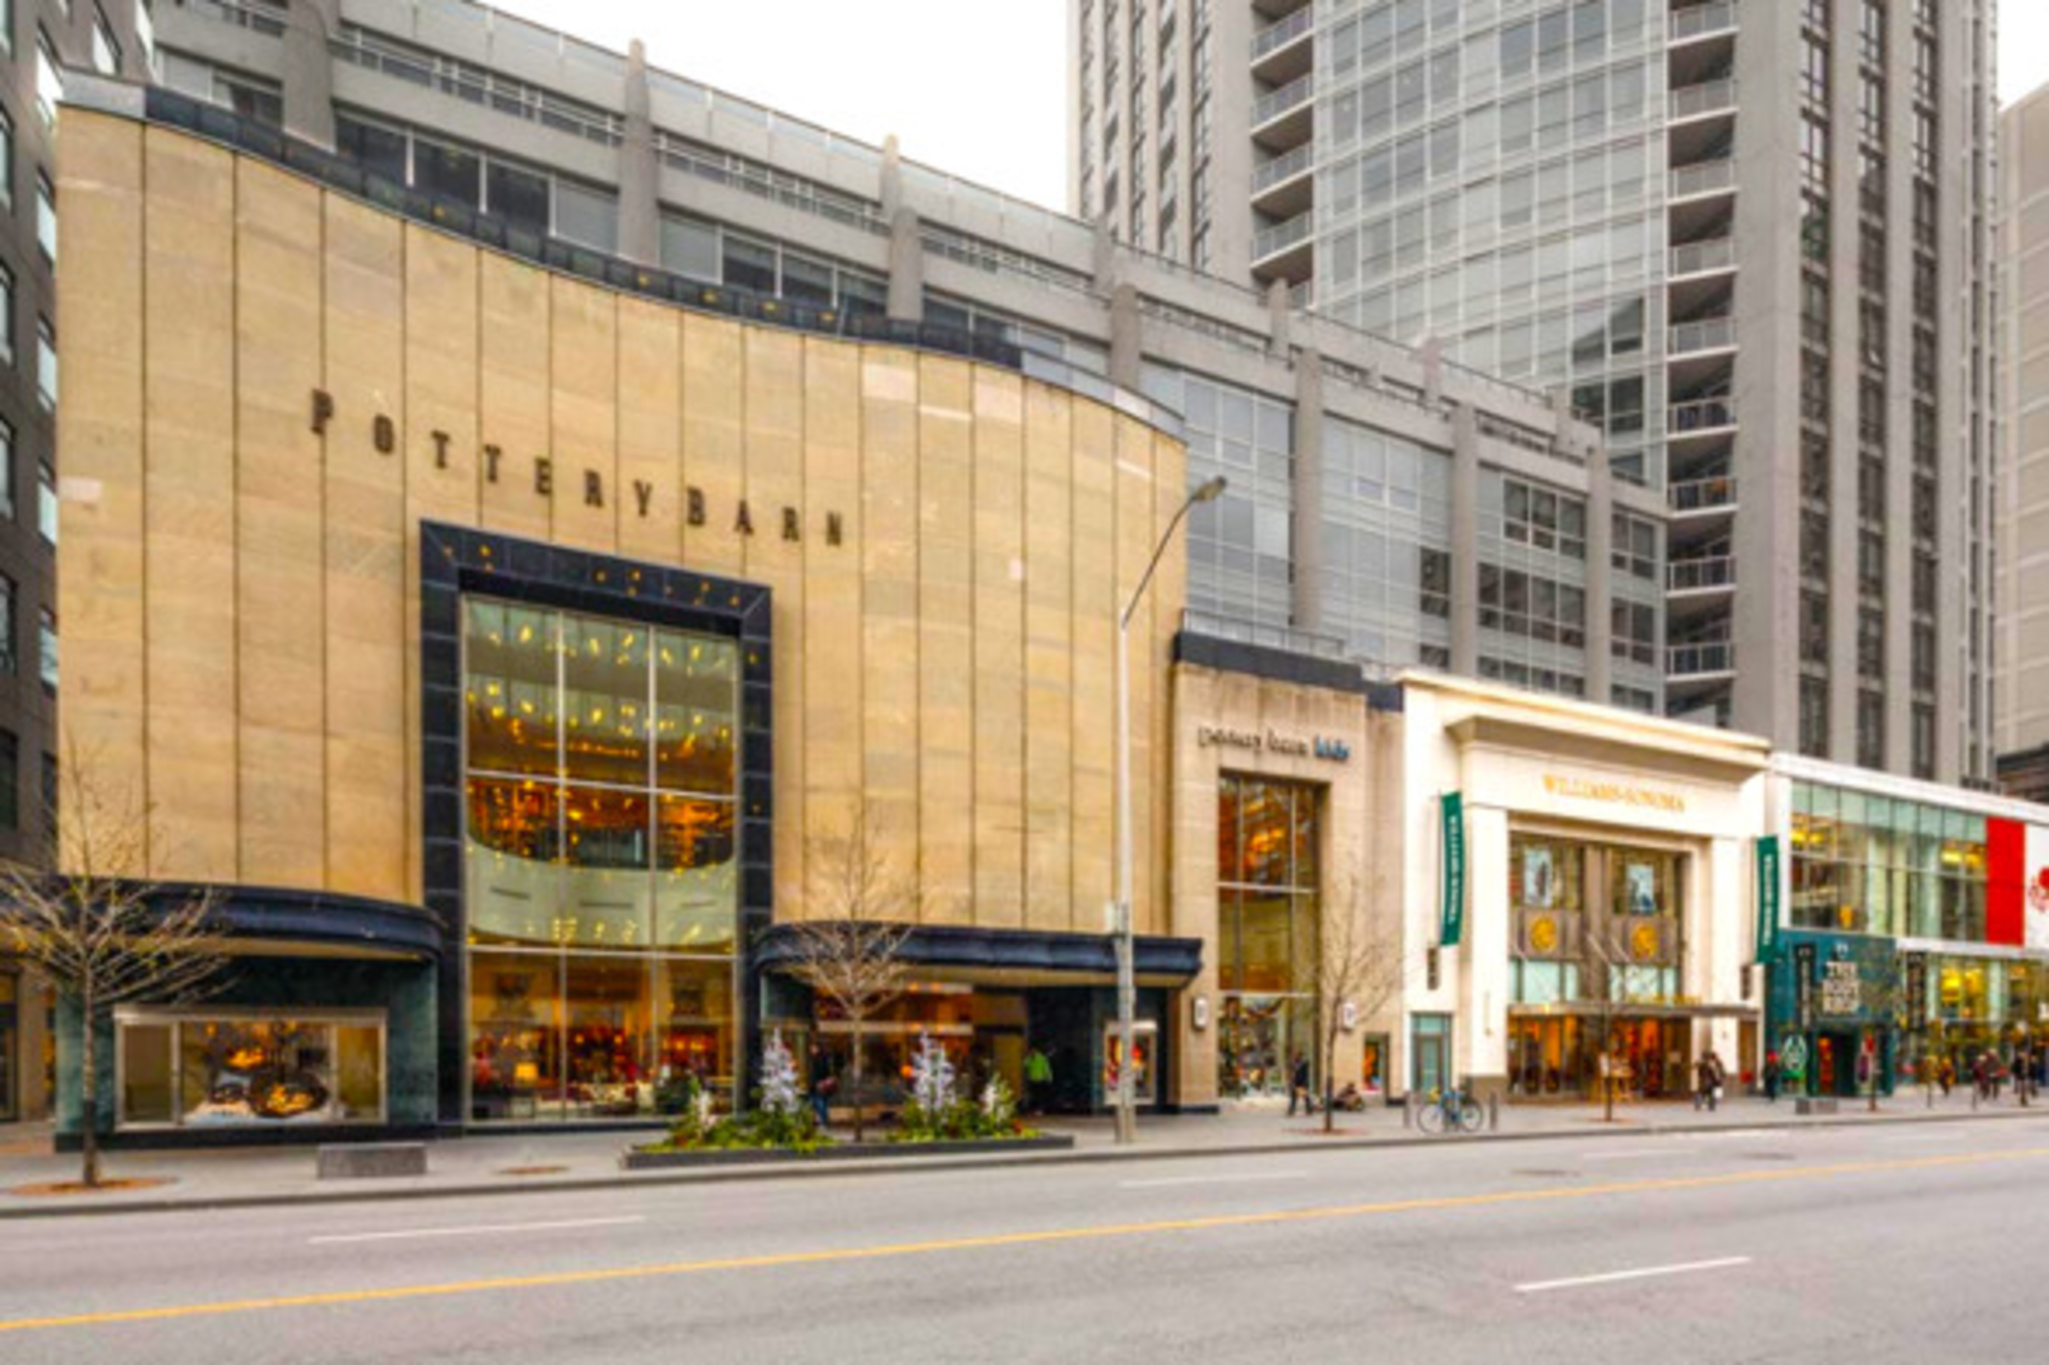 The flagship Holt Renfrew store down the street, at 50 Bloor St. W., will be renovated, adding a men's department that will be 55 per cent larger than the boutique store being closed.